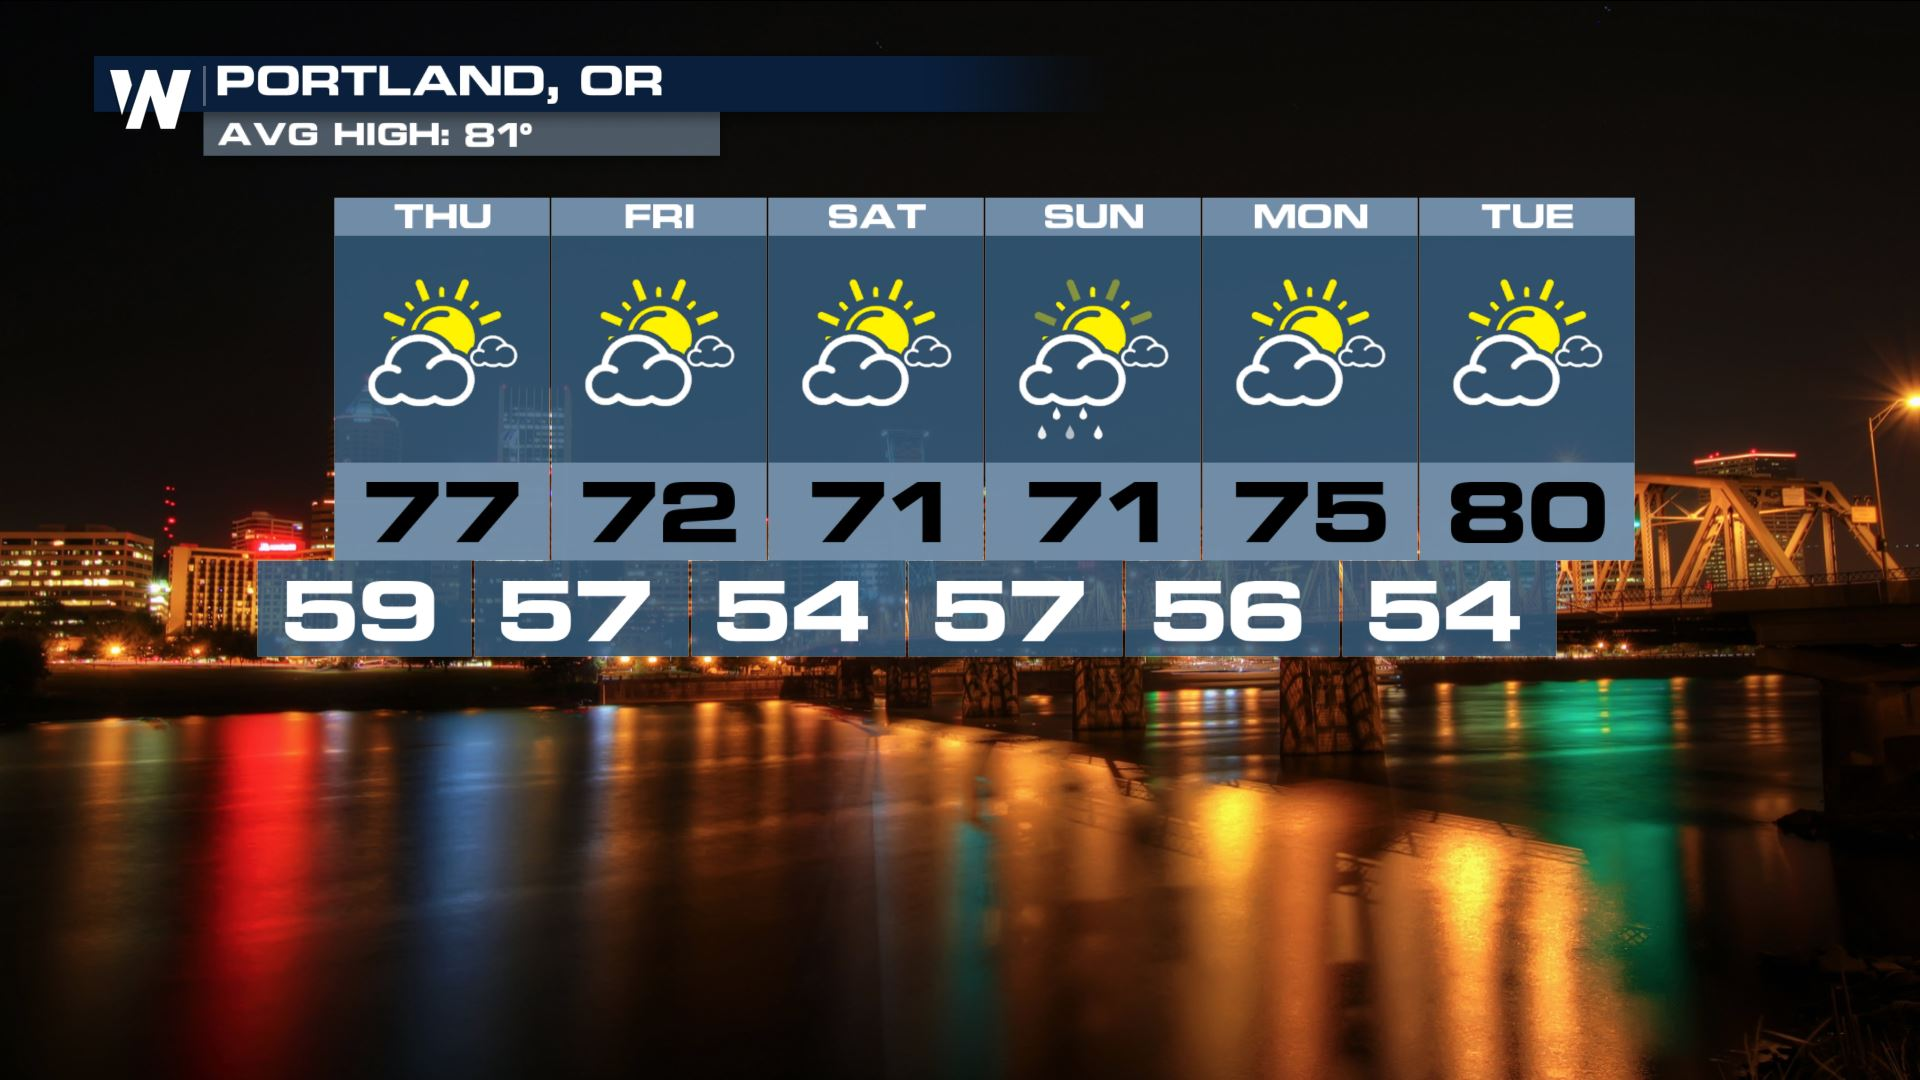 Hot Summer: Most 90° Days Observed in Portland